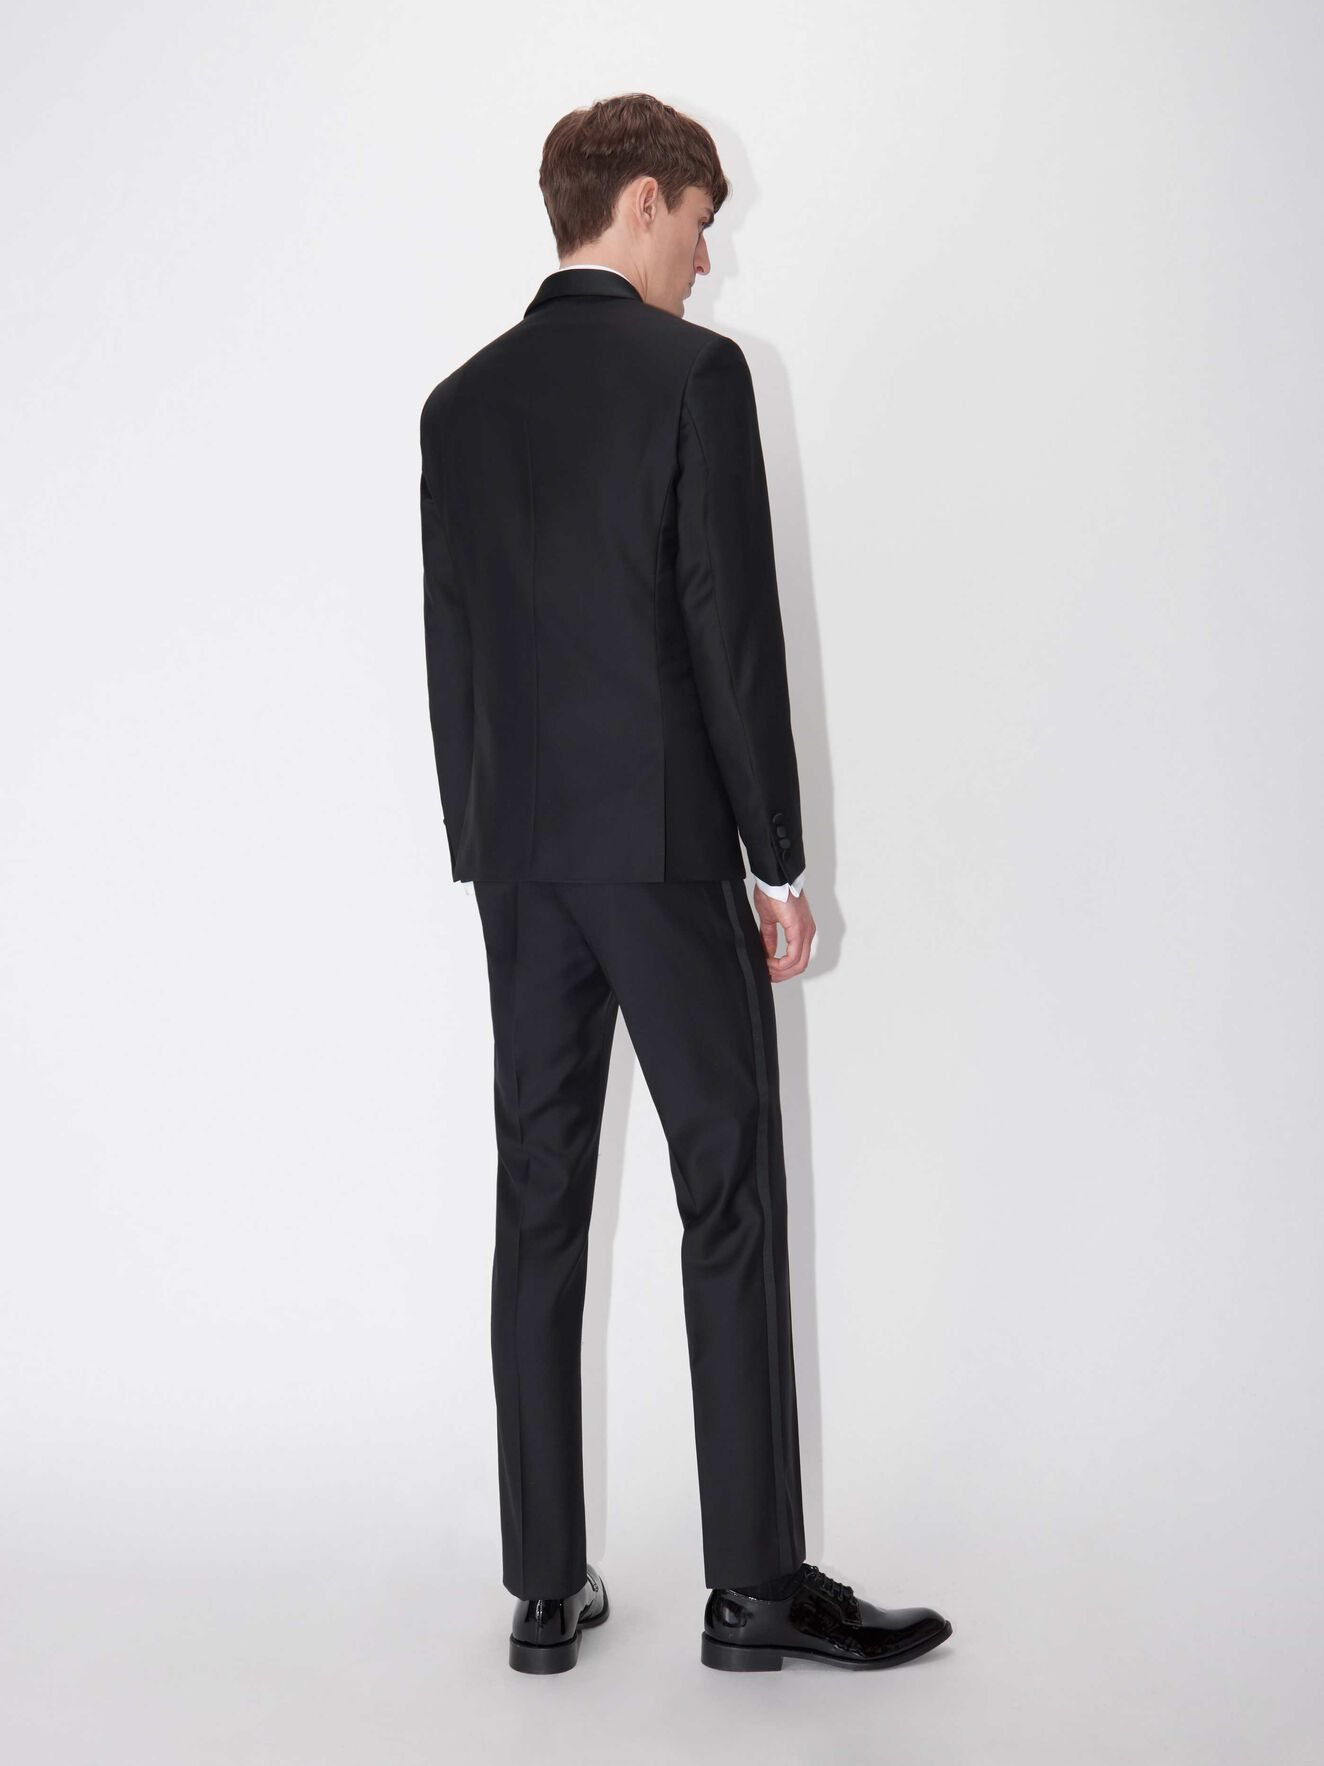 Terriss Trousers in Black from Tiger of Sweden 7b9c71874af1a